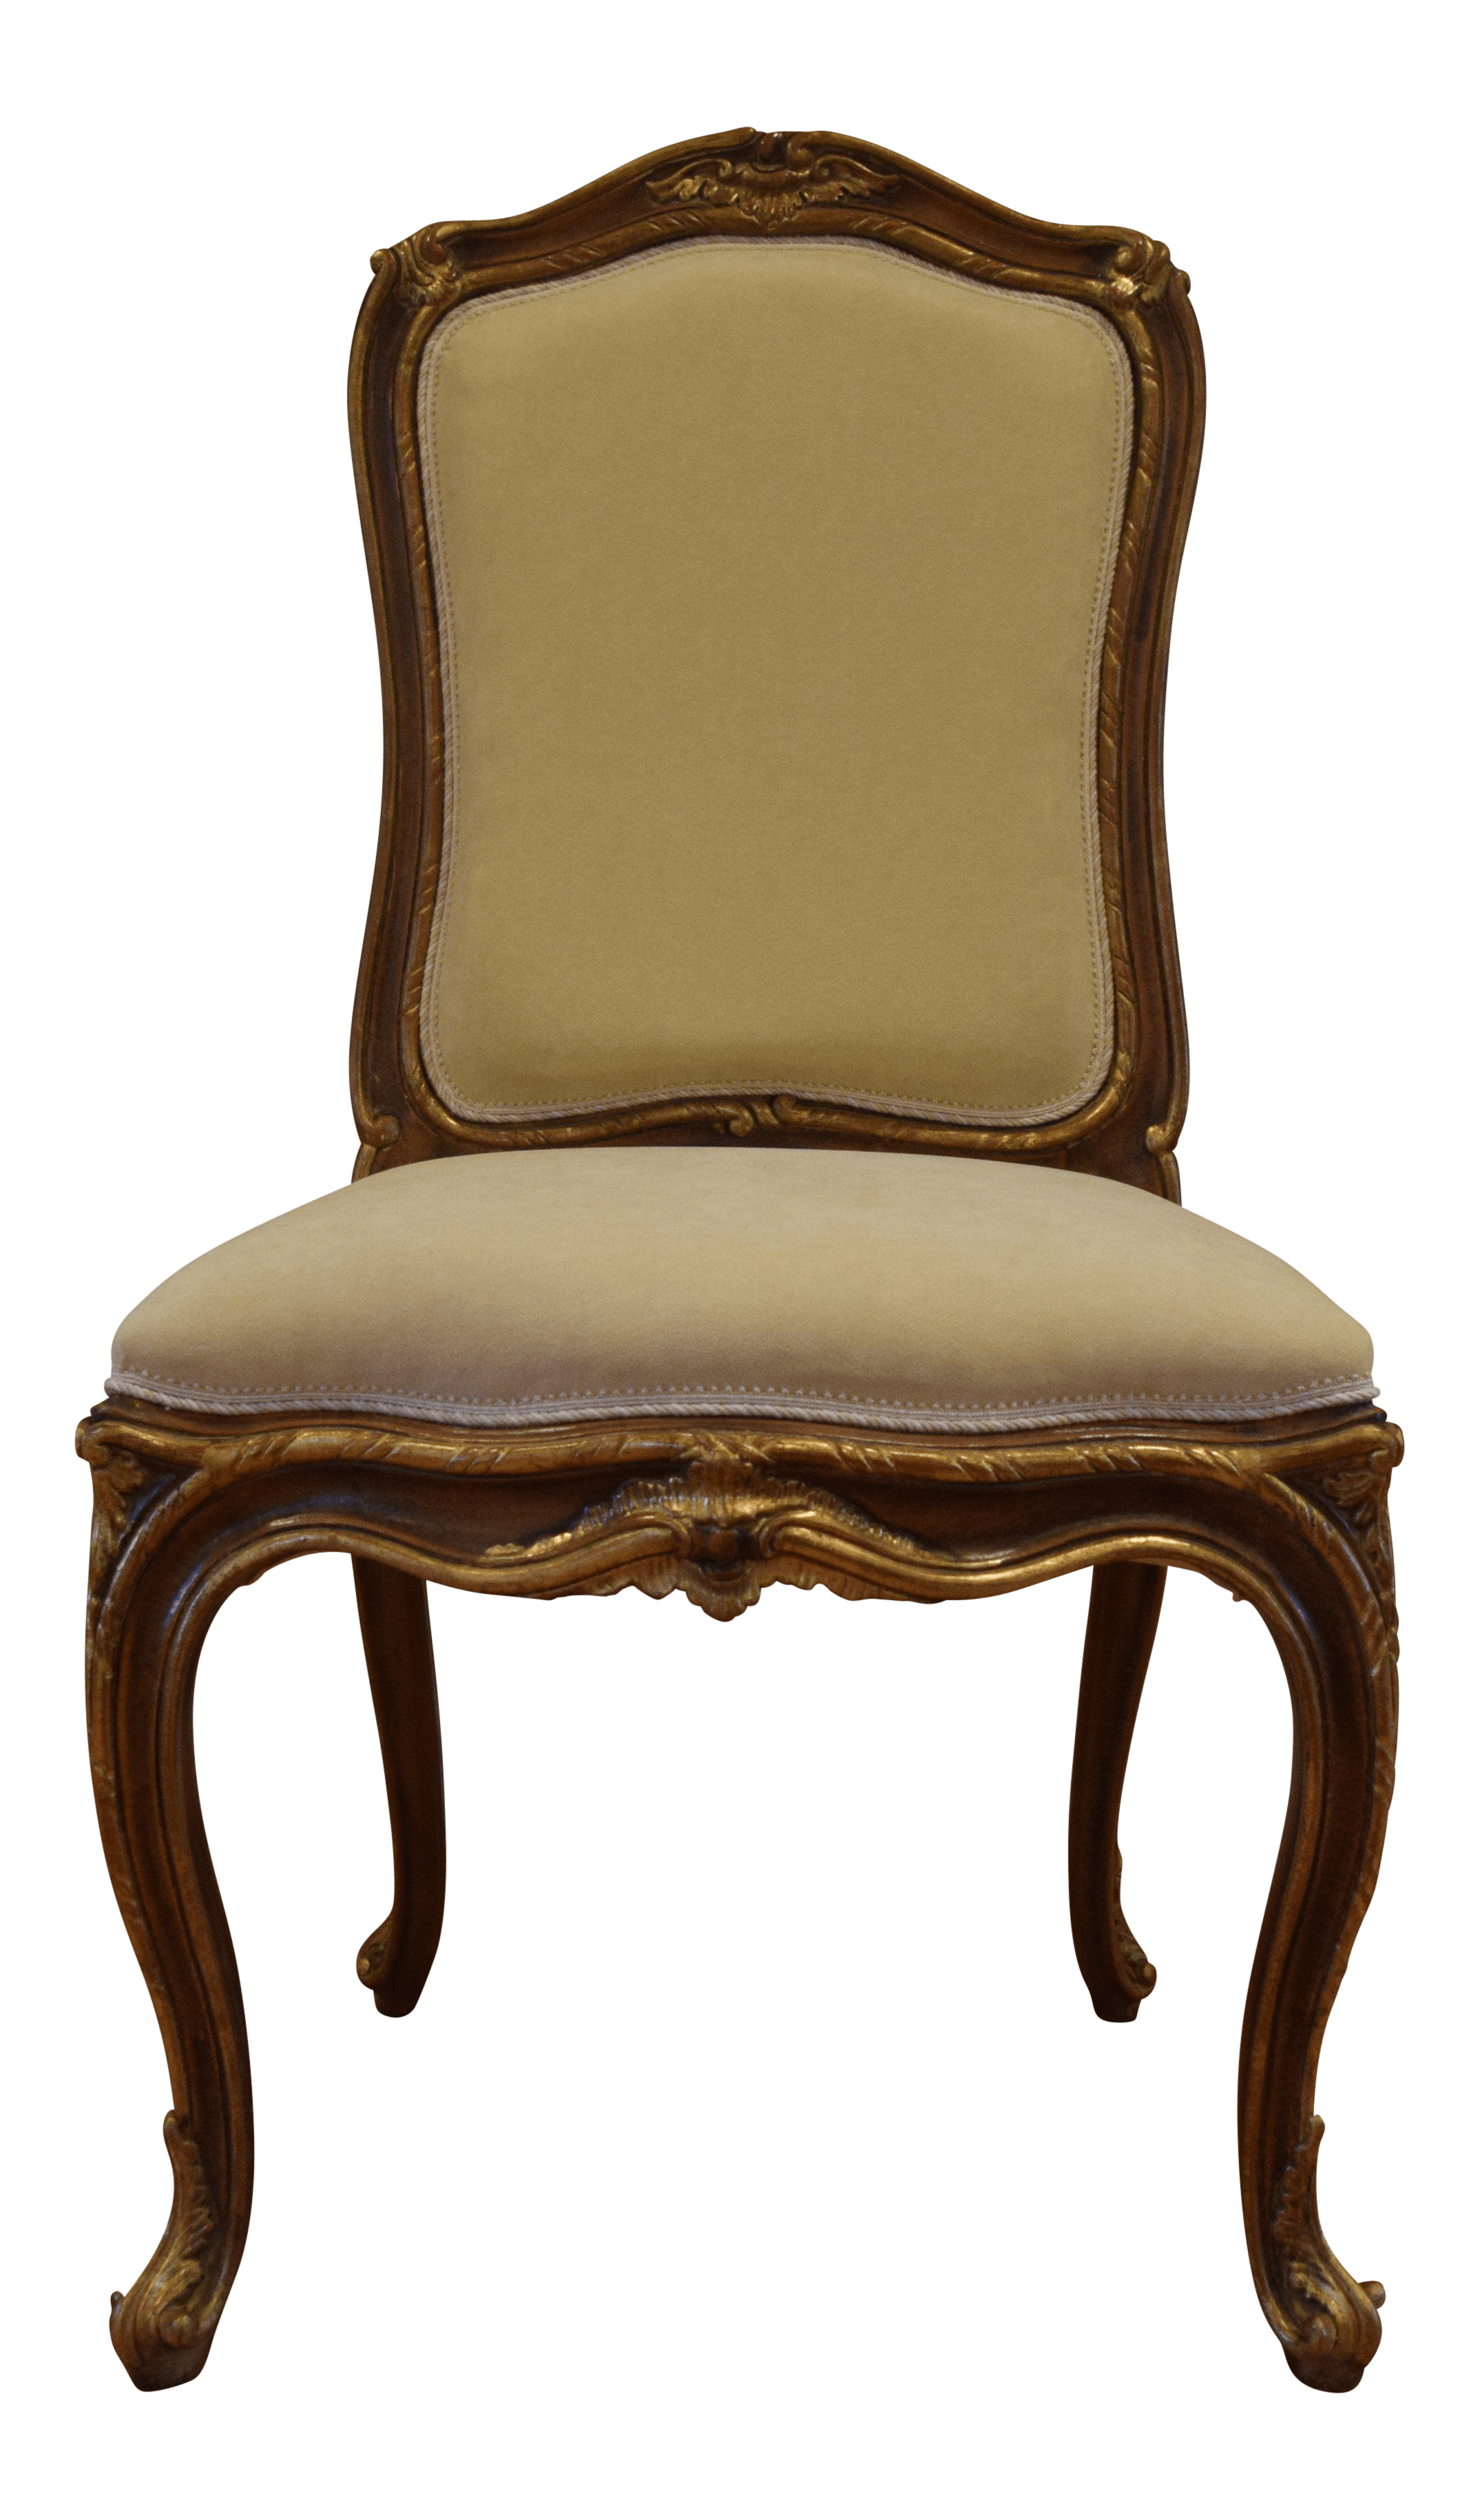 wooden hand chair bali bentwood bistro chairs uk carved italian wood chairish